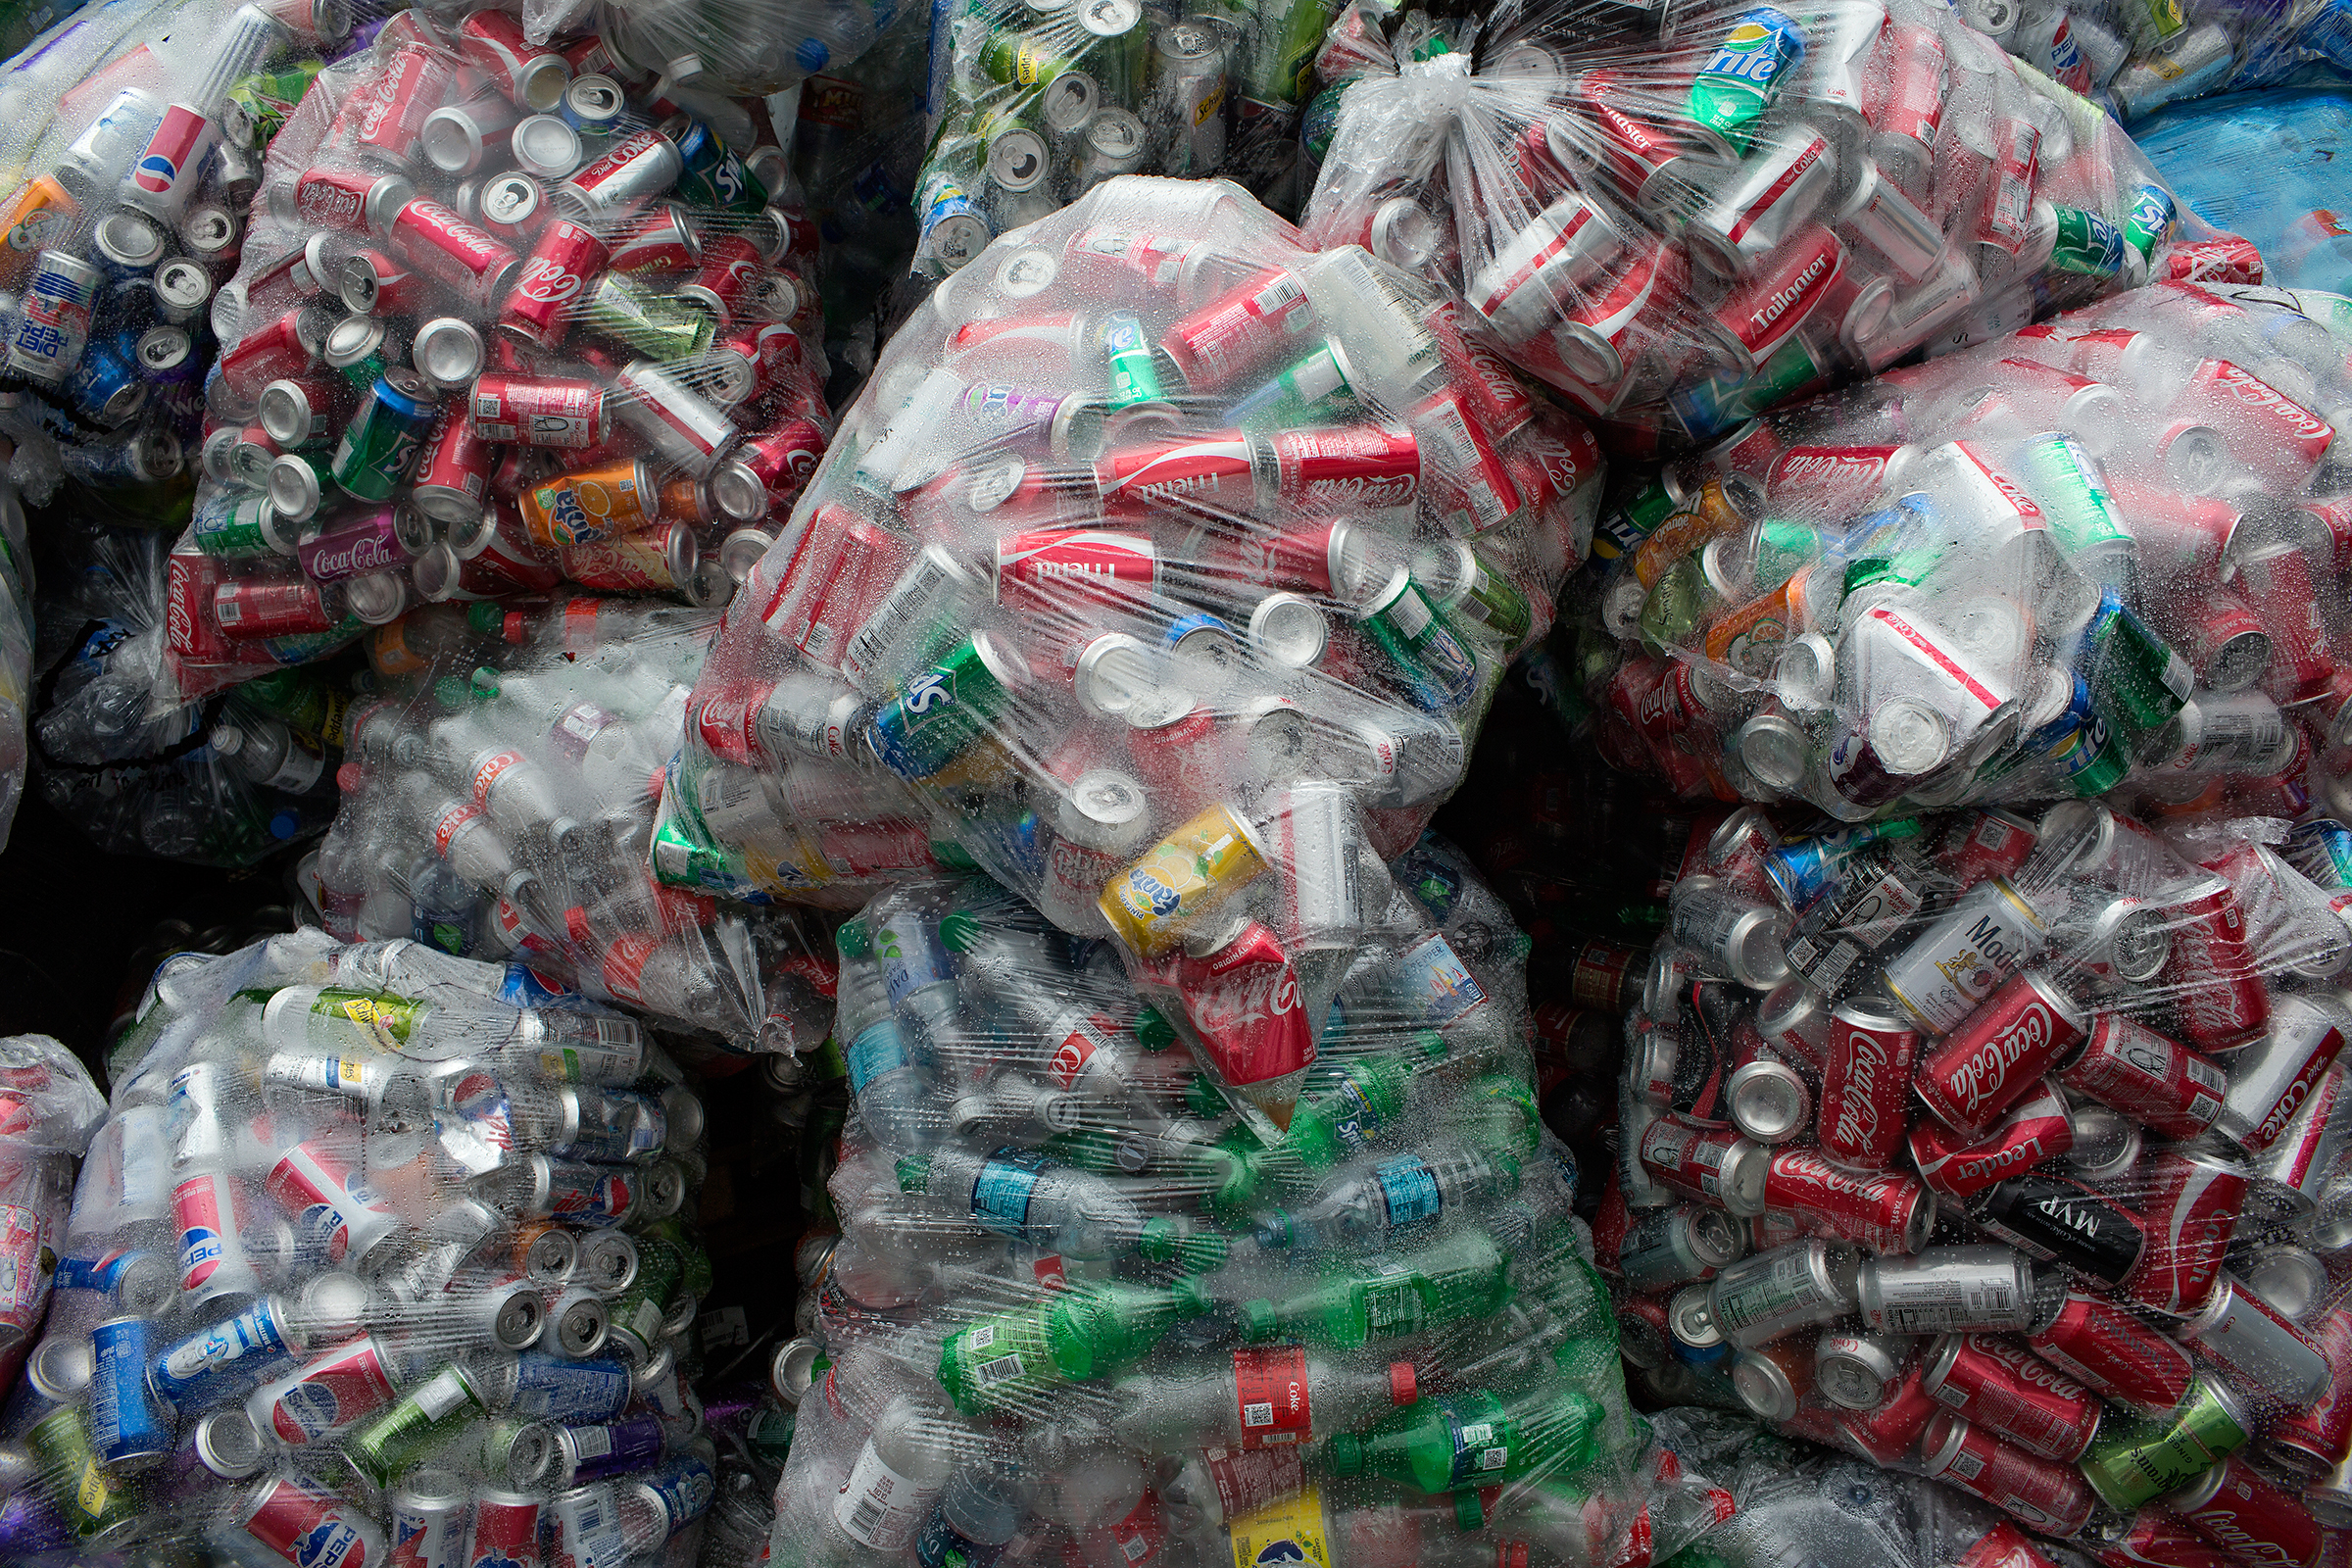 BROOKLYN, NY- JULY 25: Cans and bottles collected by street caners are sorted and bagged, awaiting pick up, a a recycling cooperative on July 25, 2018 in Bushwick, Brooklyn. (Photo by Andrew Lichtenstein/Corbis via Getty Images)